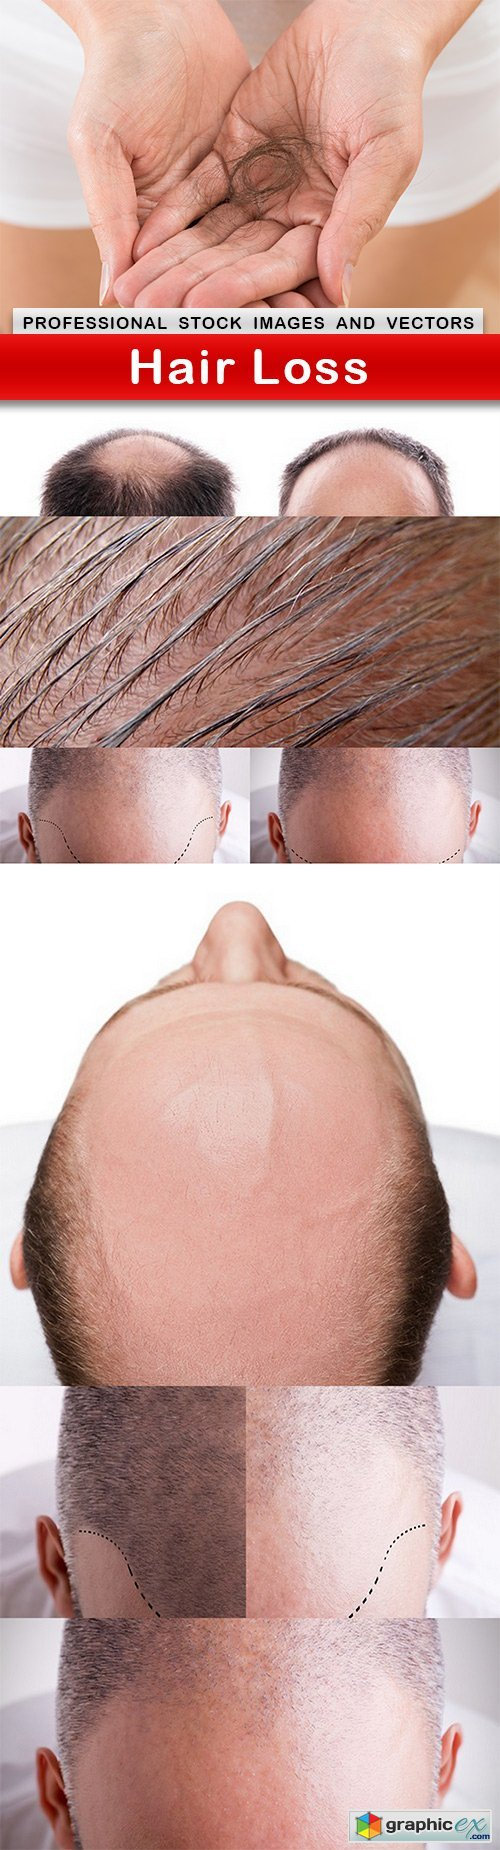 Hair Loss - 8 UHQ JPEG